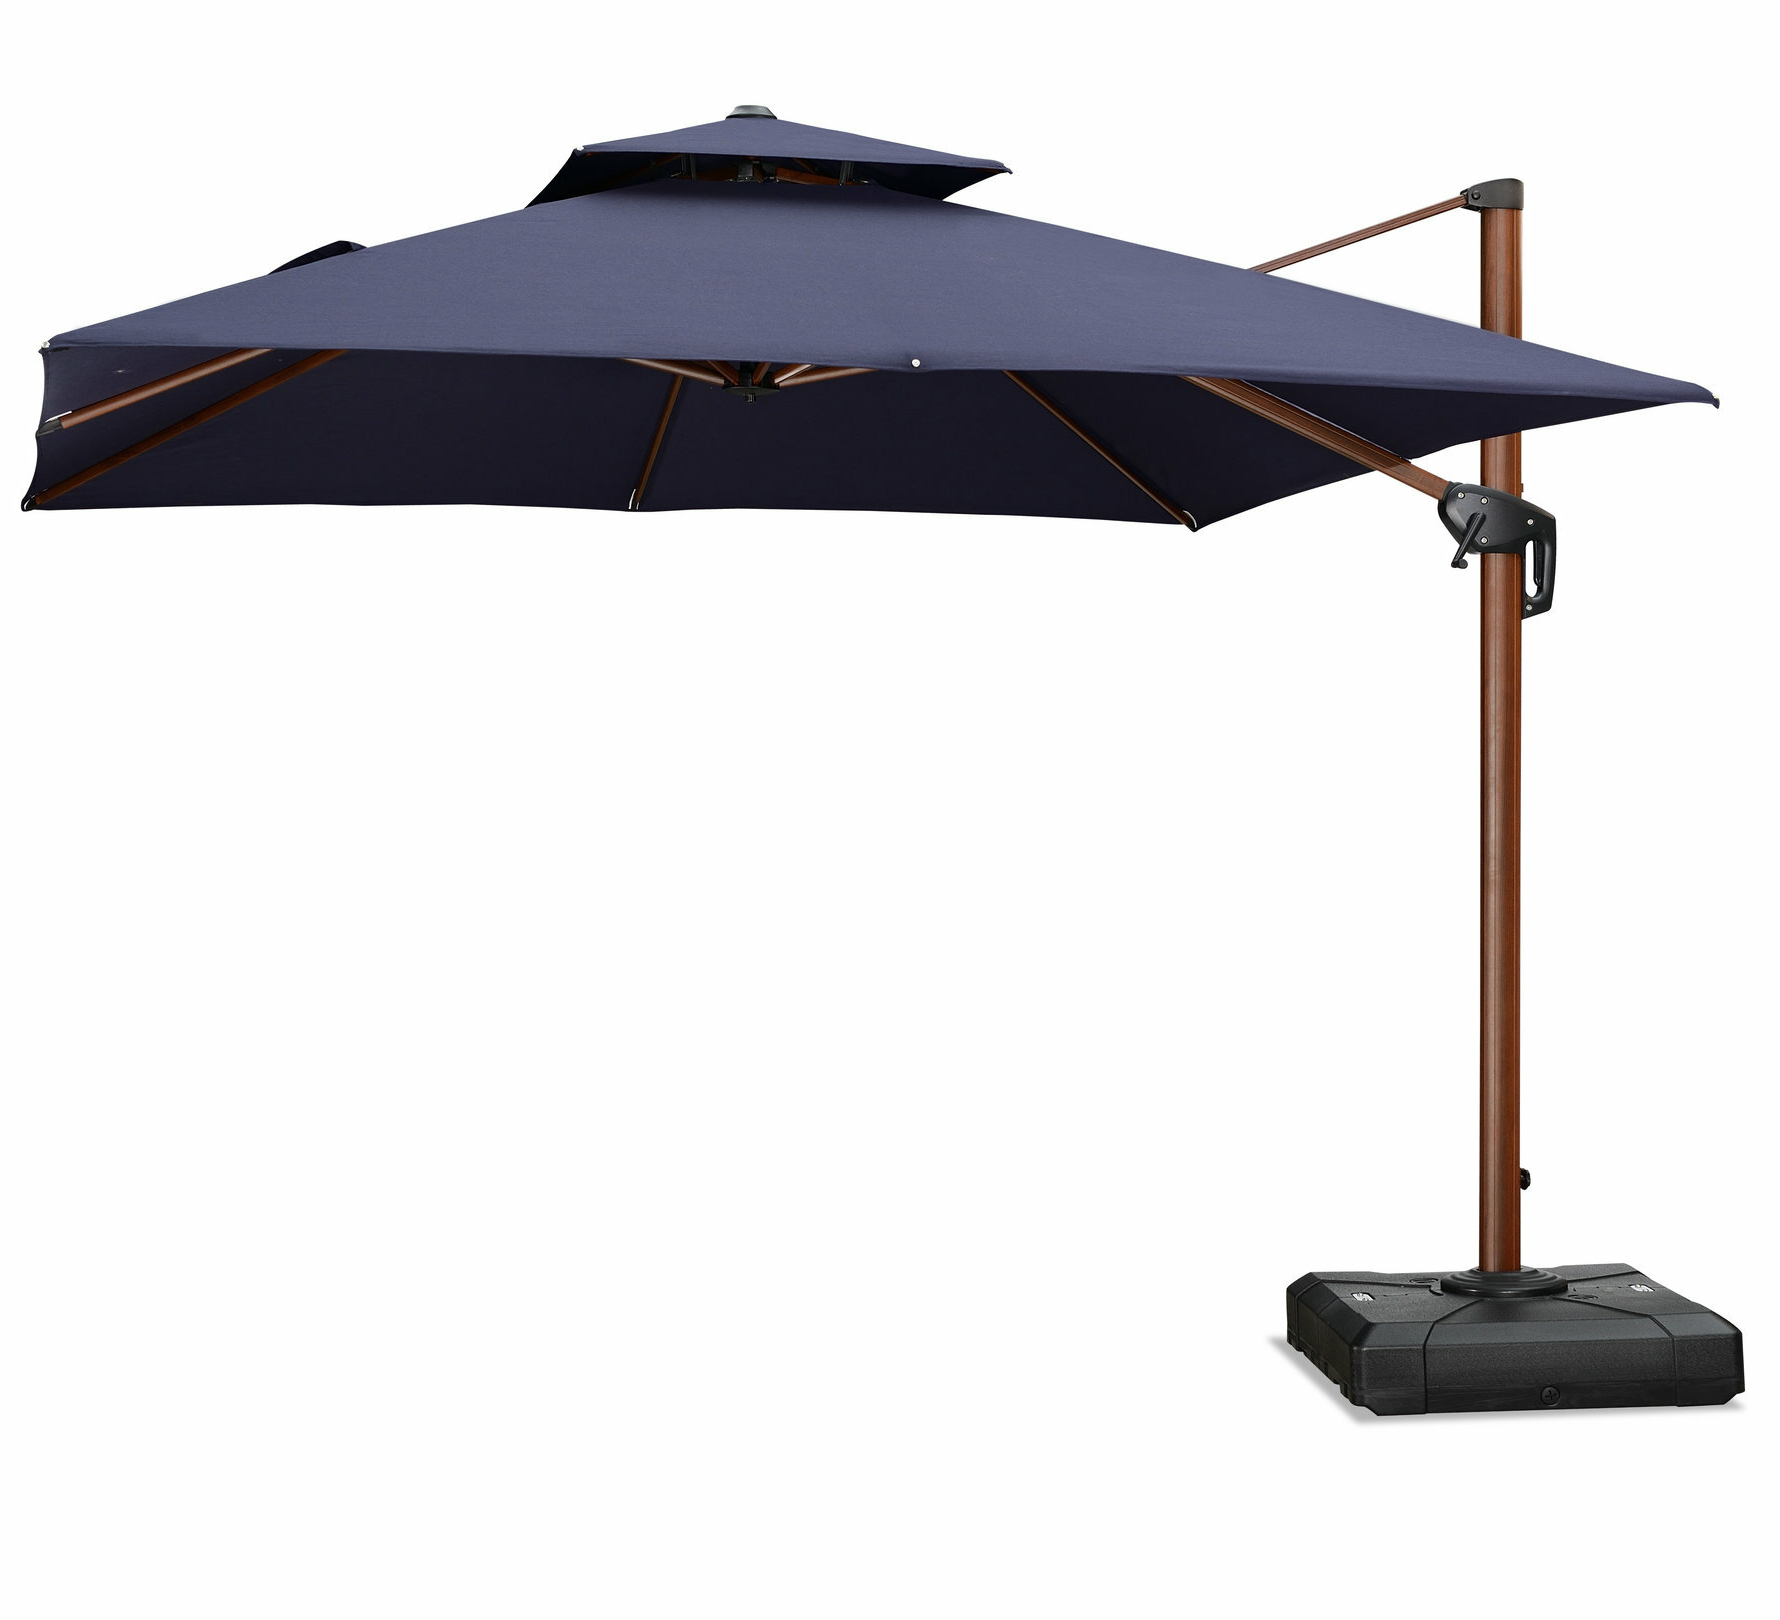 2019 Spitler Square Cantilever Umbrellas Regarding Waddell 10' Square Cantilever Umbrella (View 7 of 20)